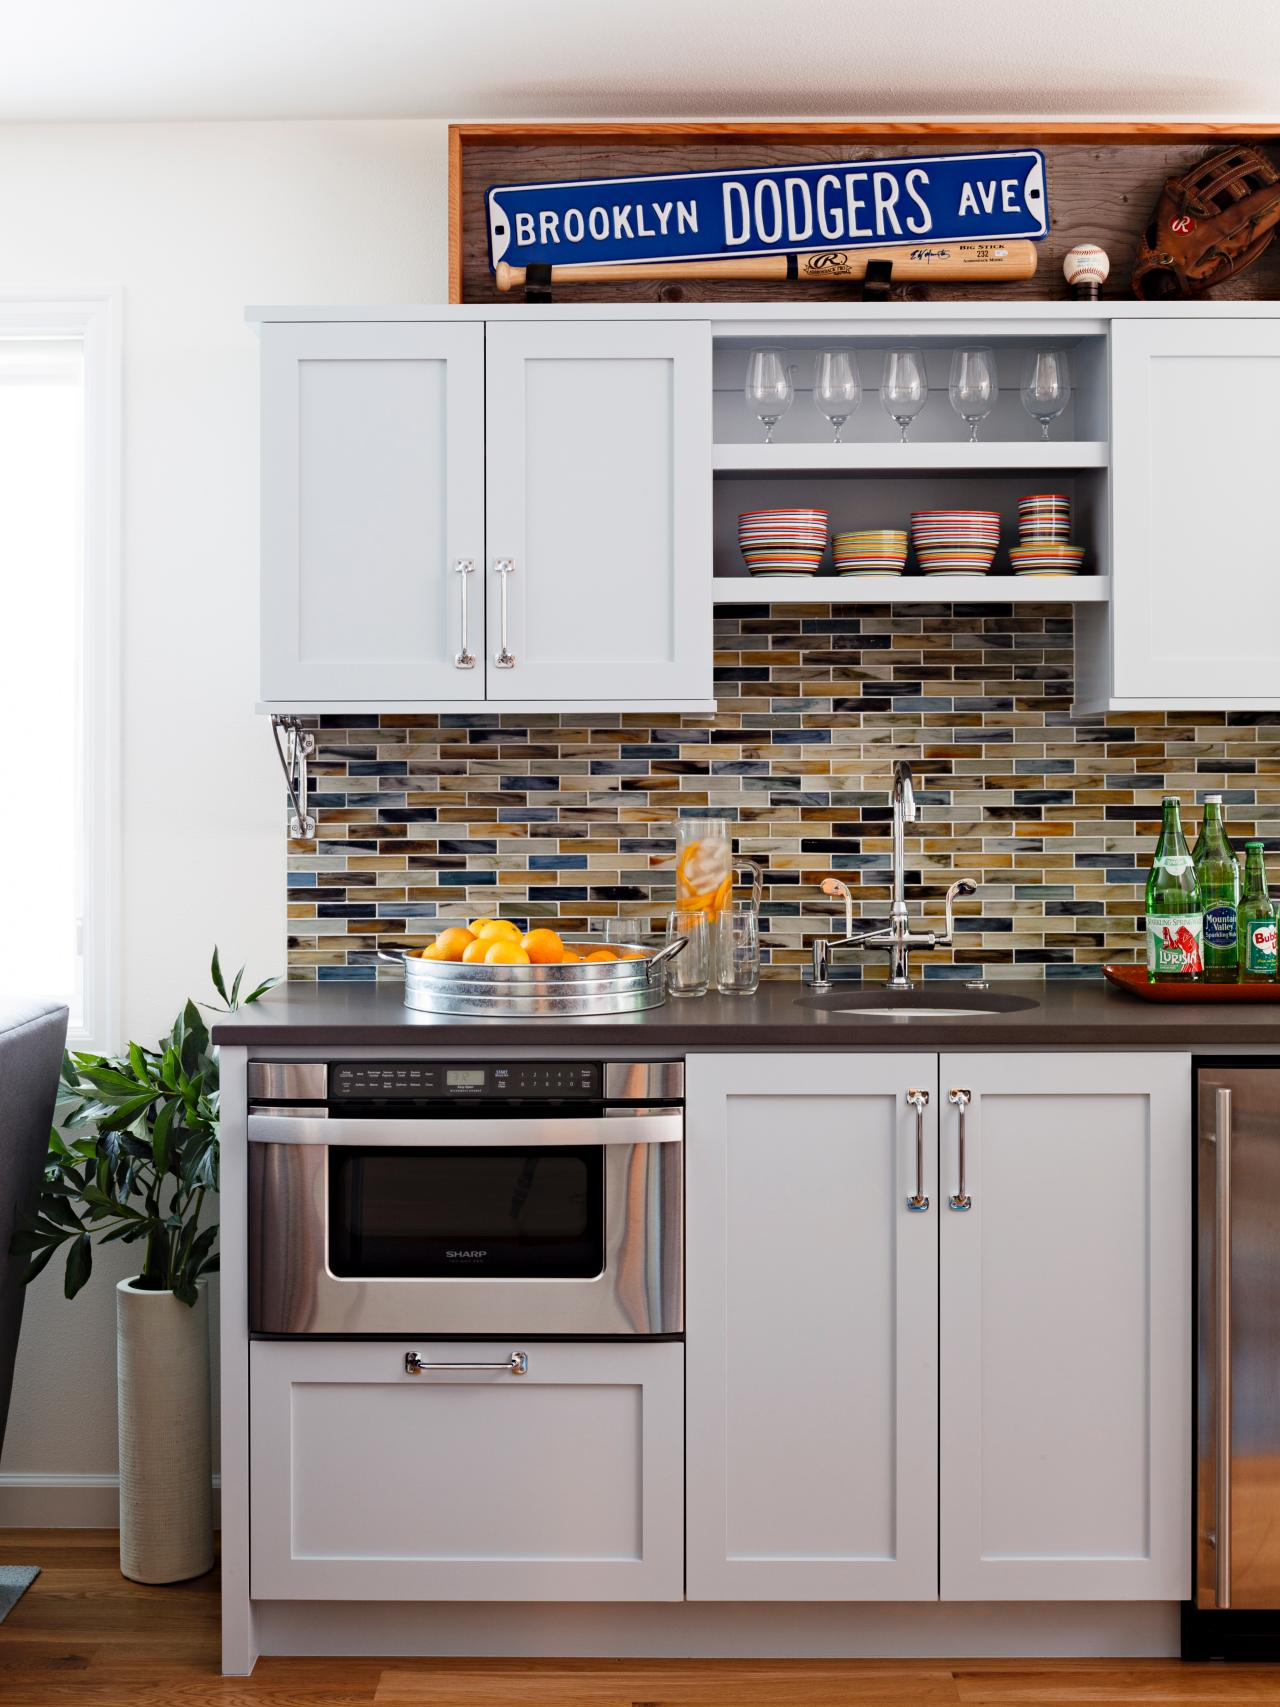 kitchen backsplash design how to build your own island 50 best ideas for 2019 small tile idea